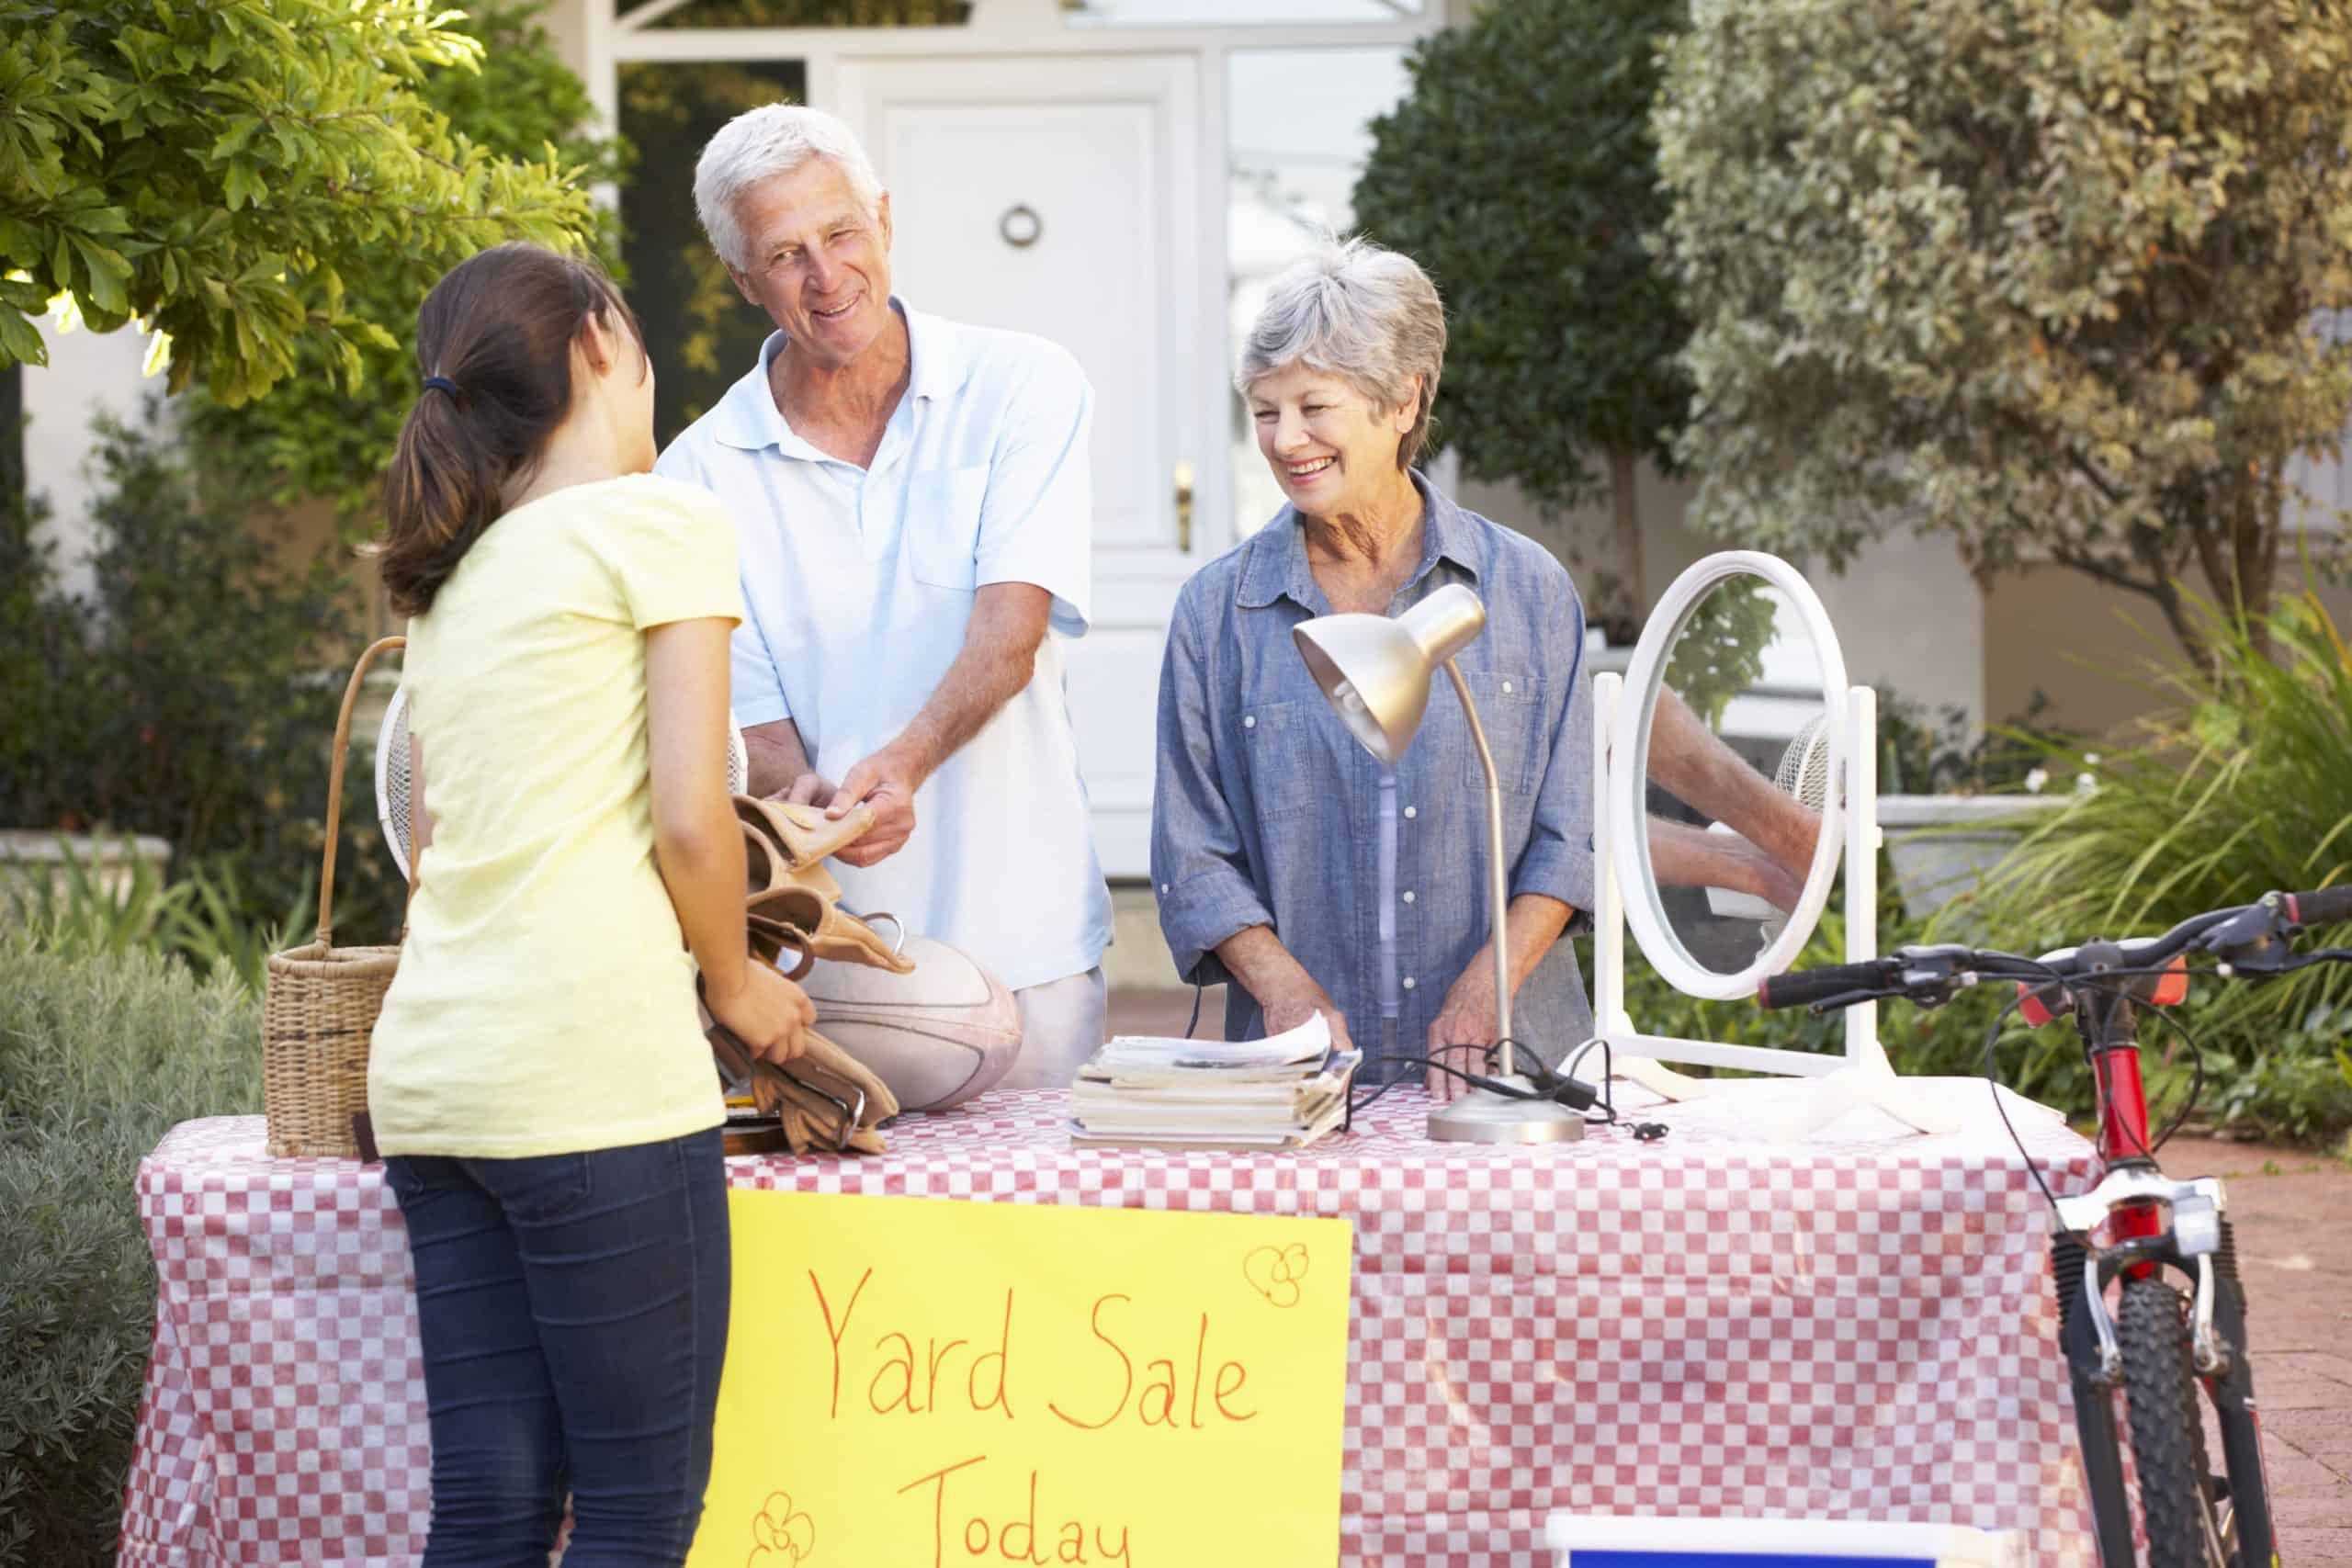 Make money with garage sales - Older couple behind table with red-and-white checkered tablecloth and sign saying Yard Sale Today selling to young brunette woman in yellow